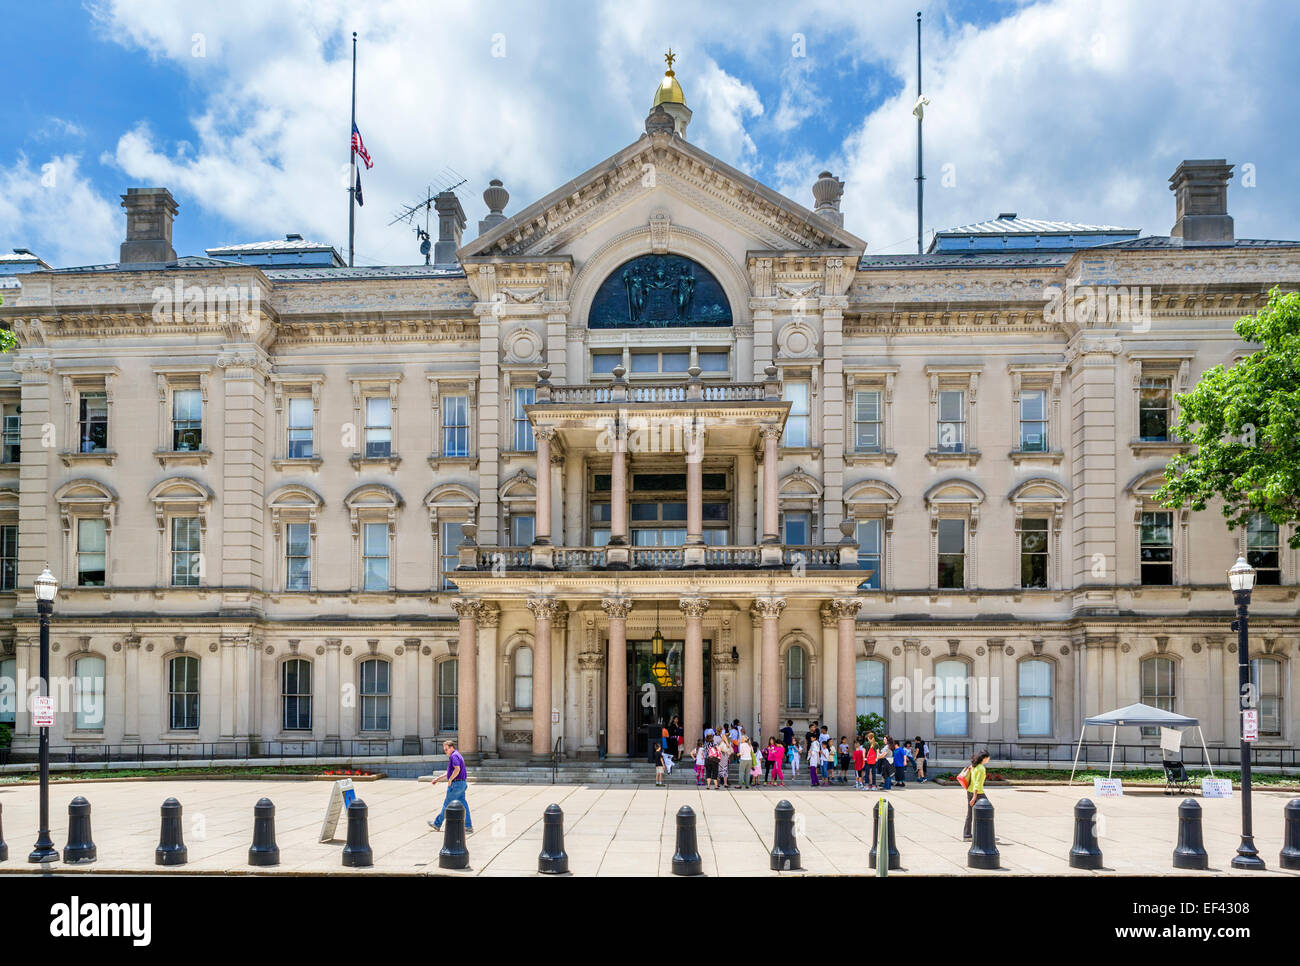 New Jersey State House on West State Street, Trenton, New Jersey, USA - Stock Image